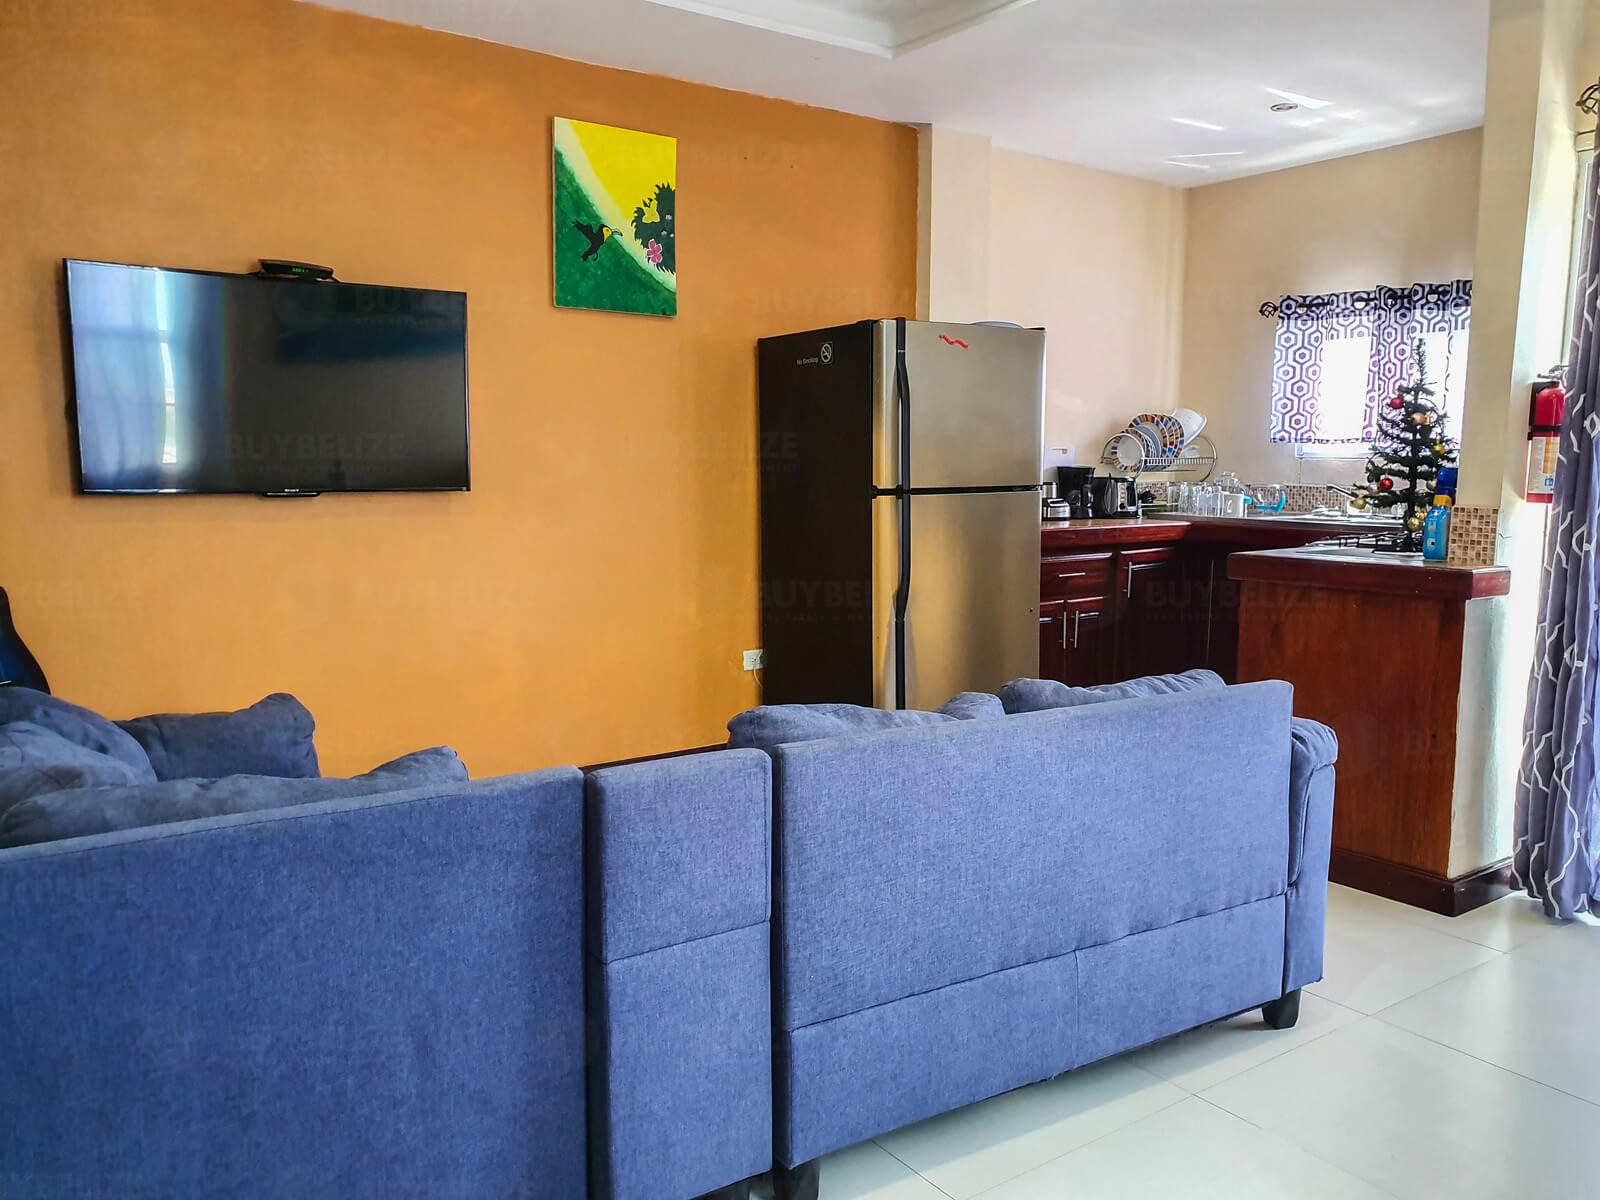 2 Bed 1 Bath  Apartment for Rent in Belize City